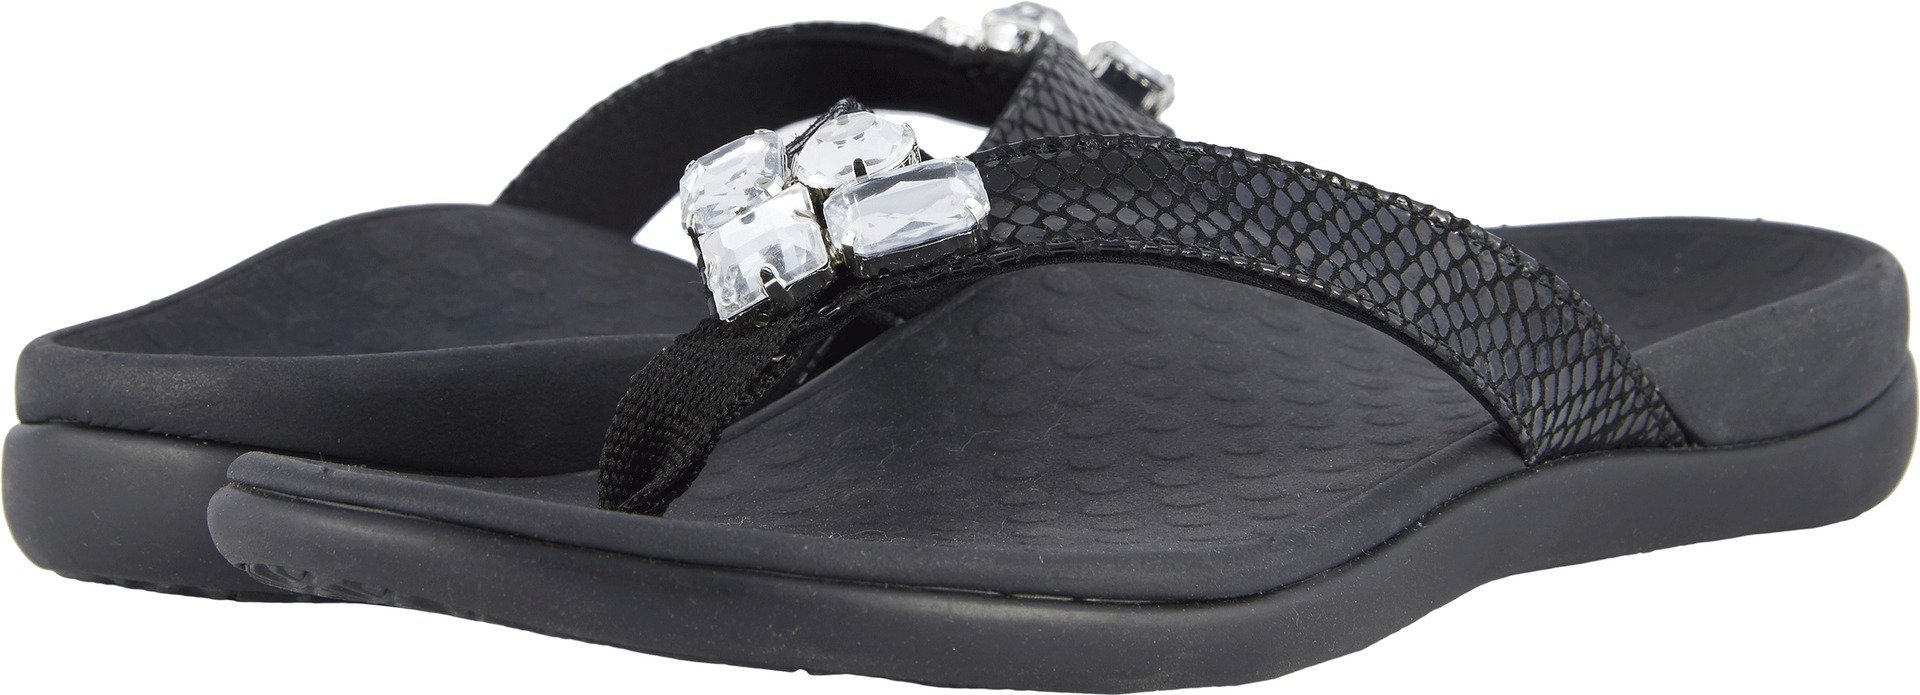 Vionic Tide Jewel- Womens Flip Flop Sandal Black Snake - 8 Medium by Vionic